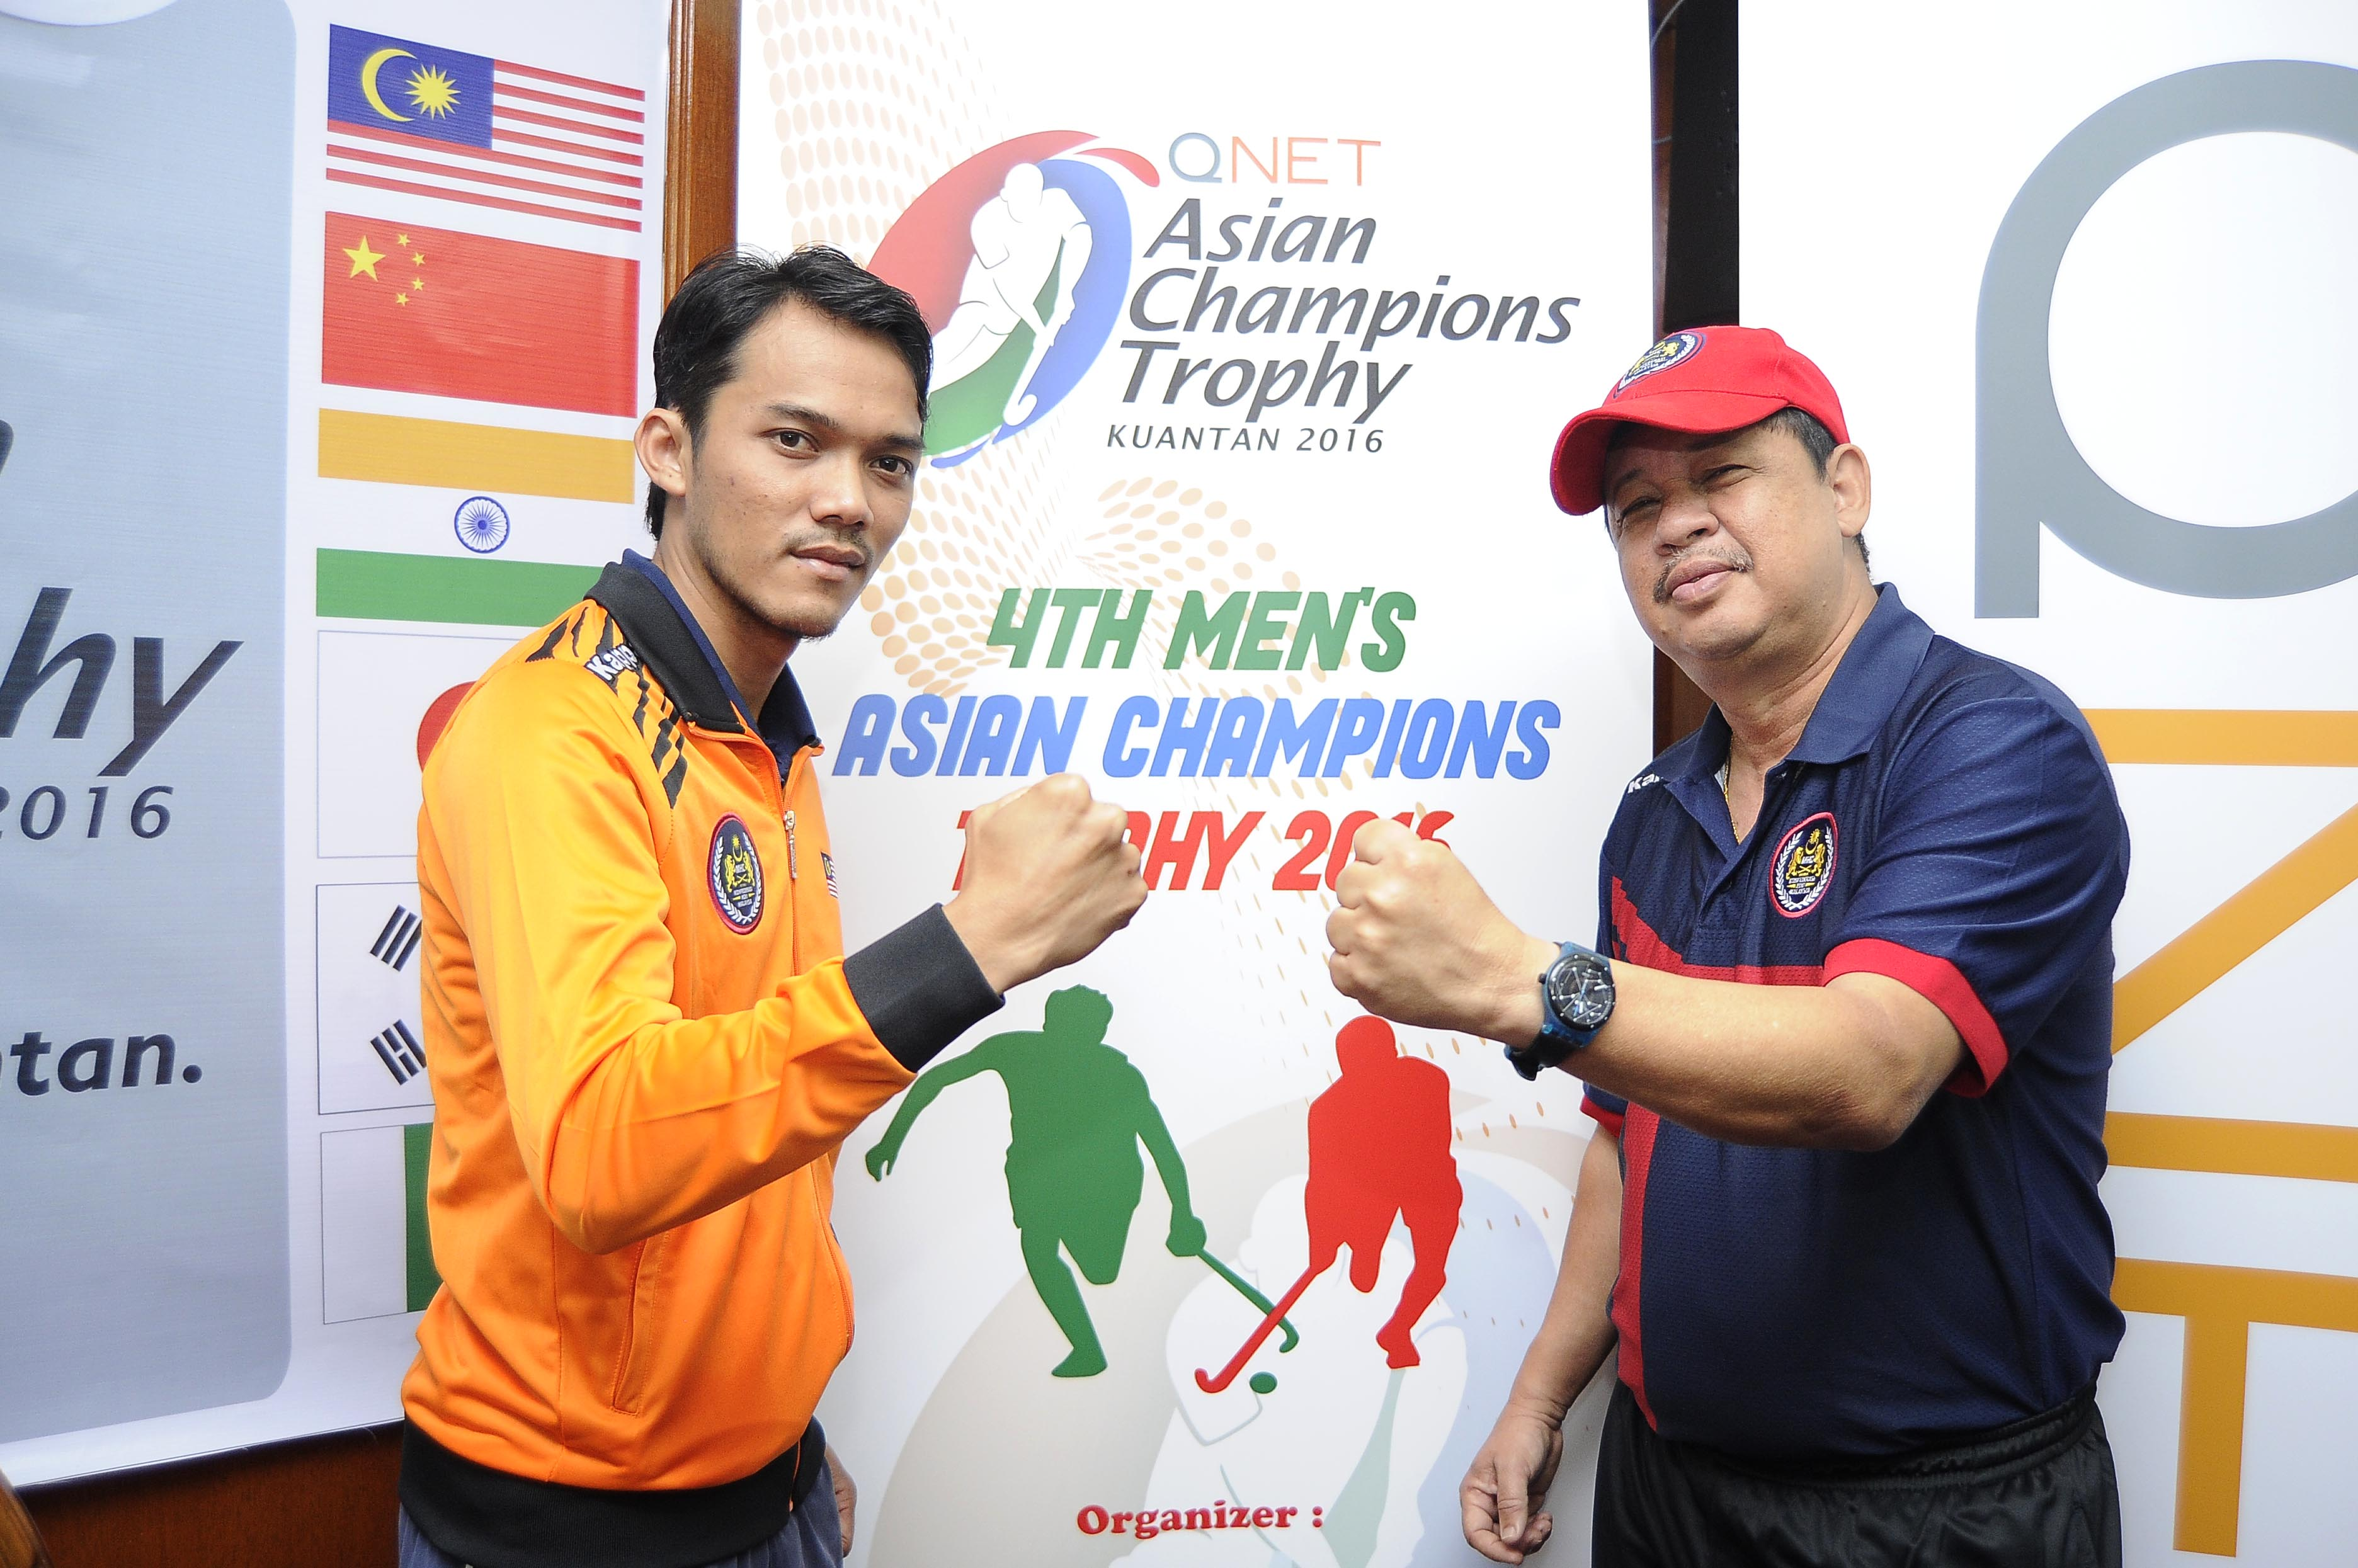 The National Team's head coach, Stephen Van Huizen (right) posing with captain, Shukri Mutalib after the Pre-Tournament Press Conference for the QNET 4th Men's Asian Champions Trophy 2016 in Kuantan today.